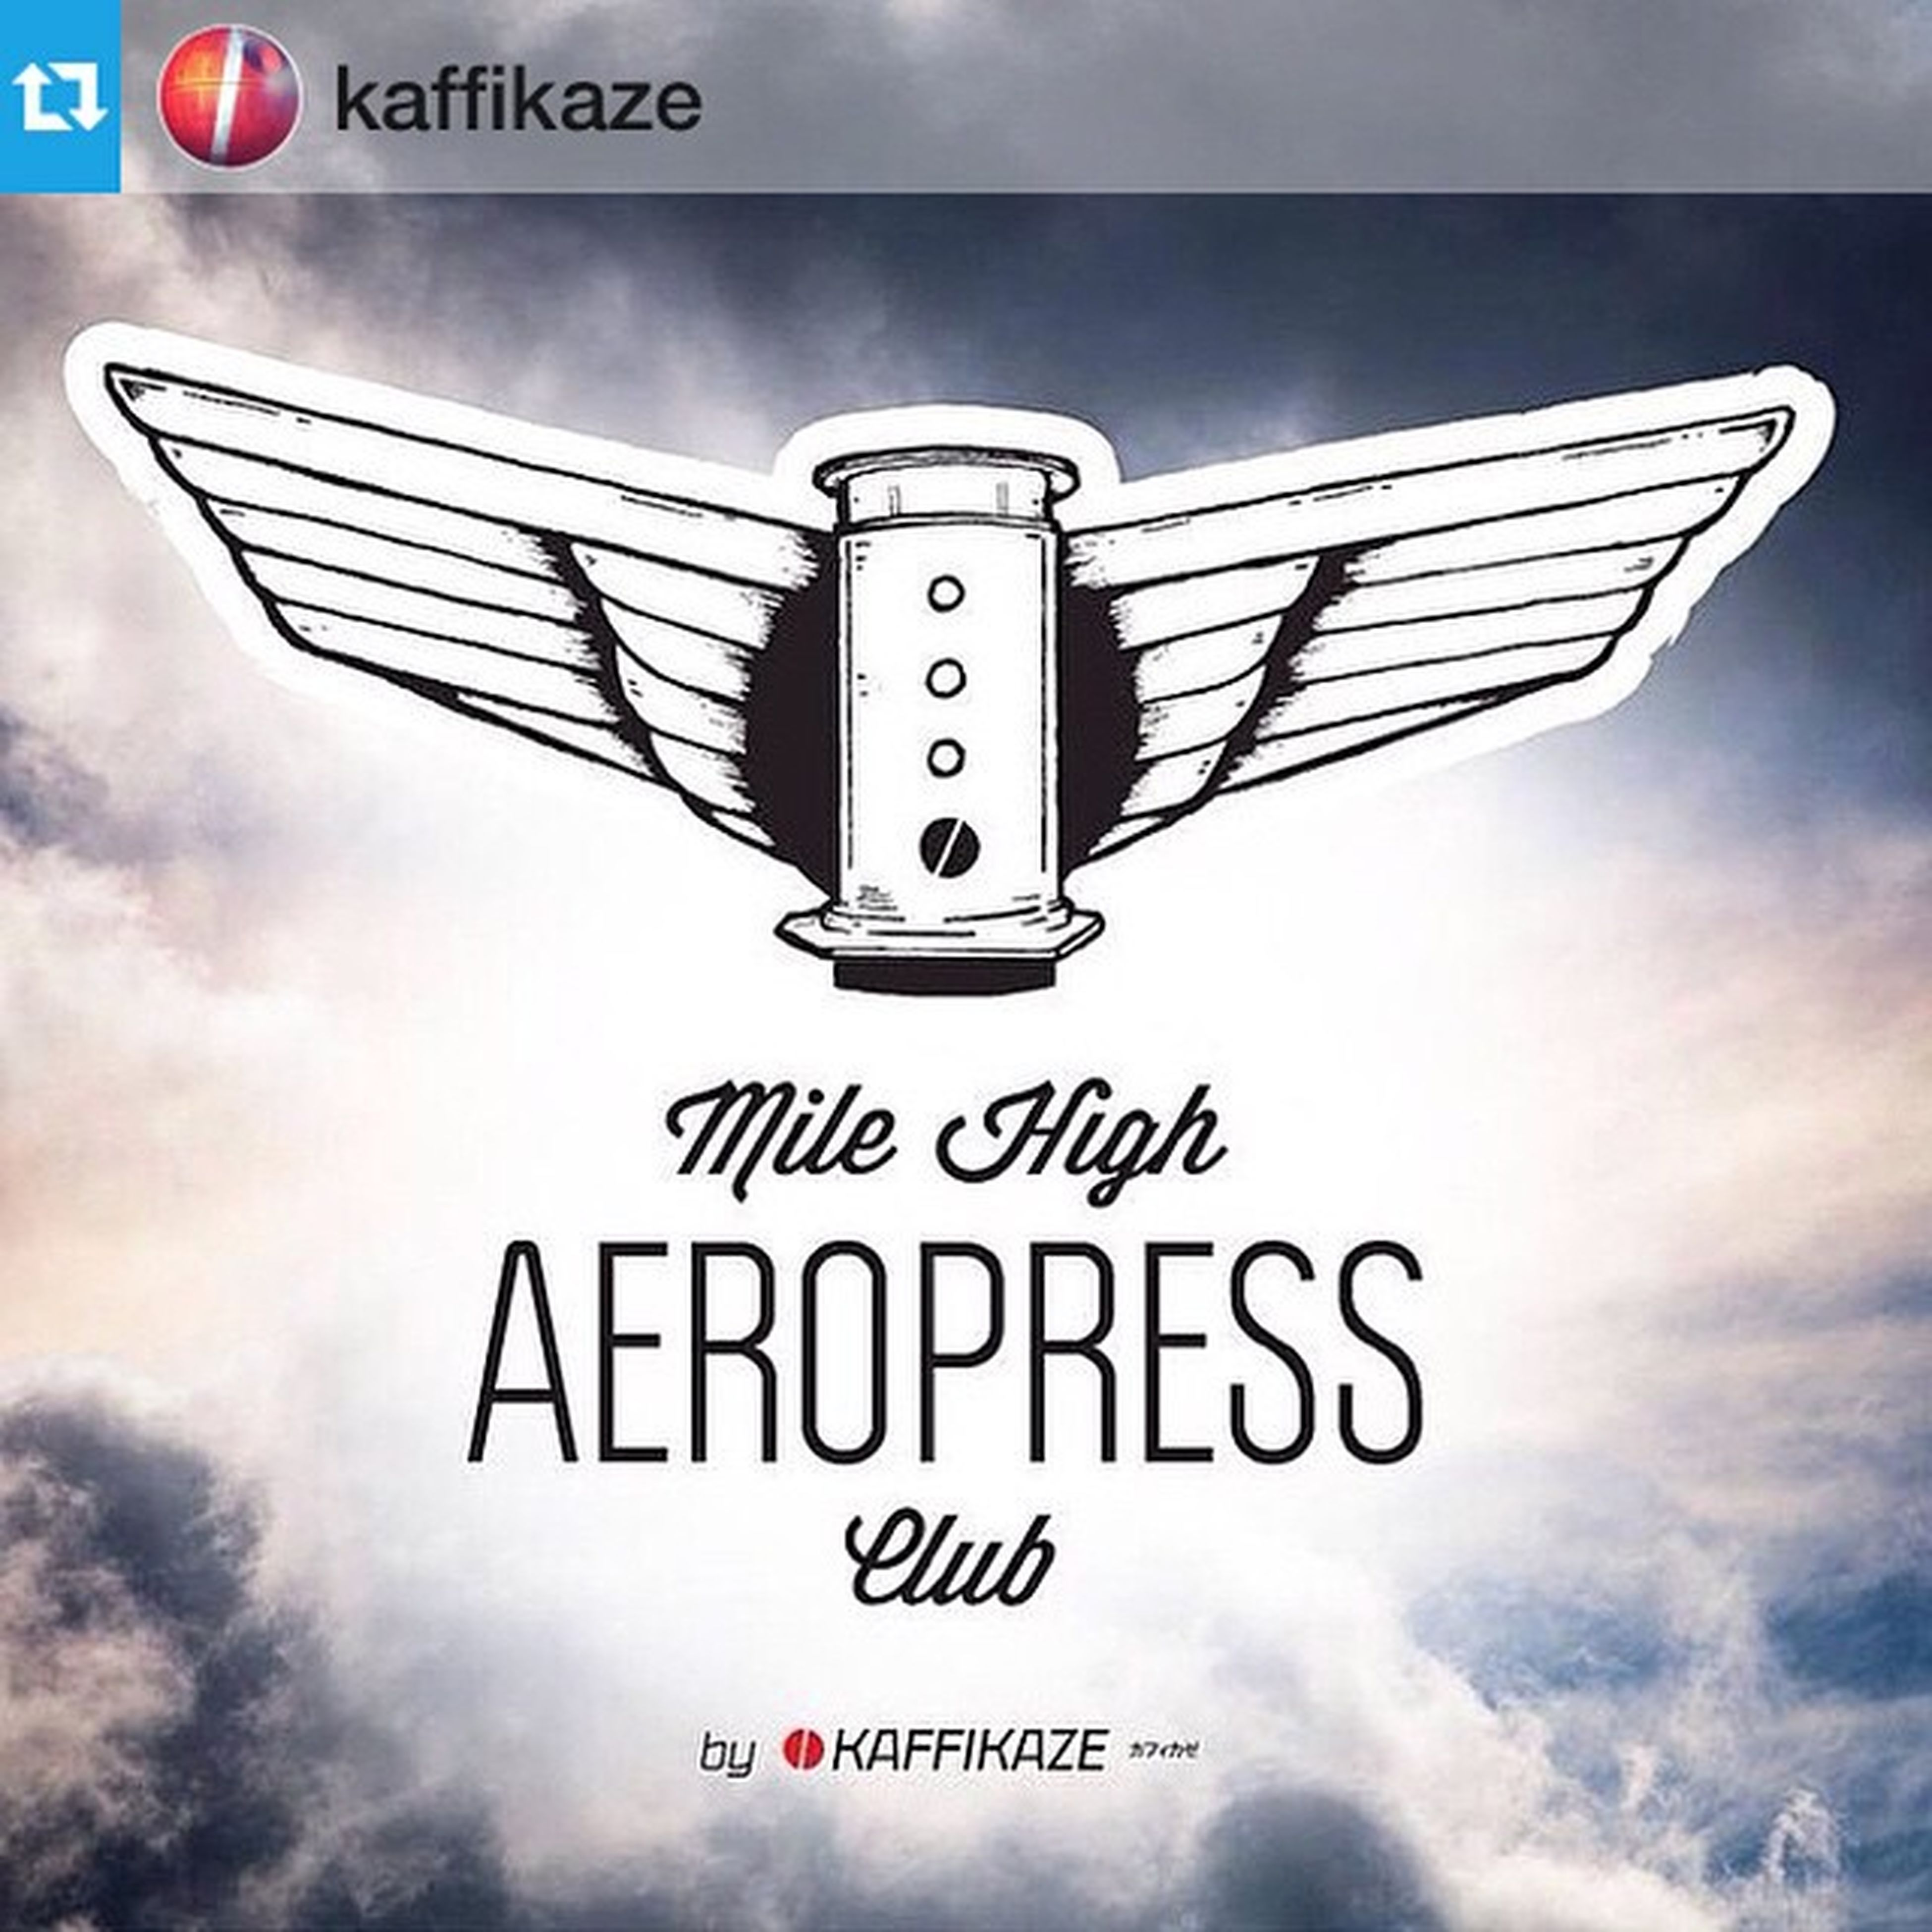 Repost @kaffikaze with @repostapp.